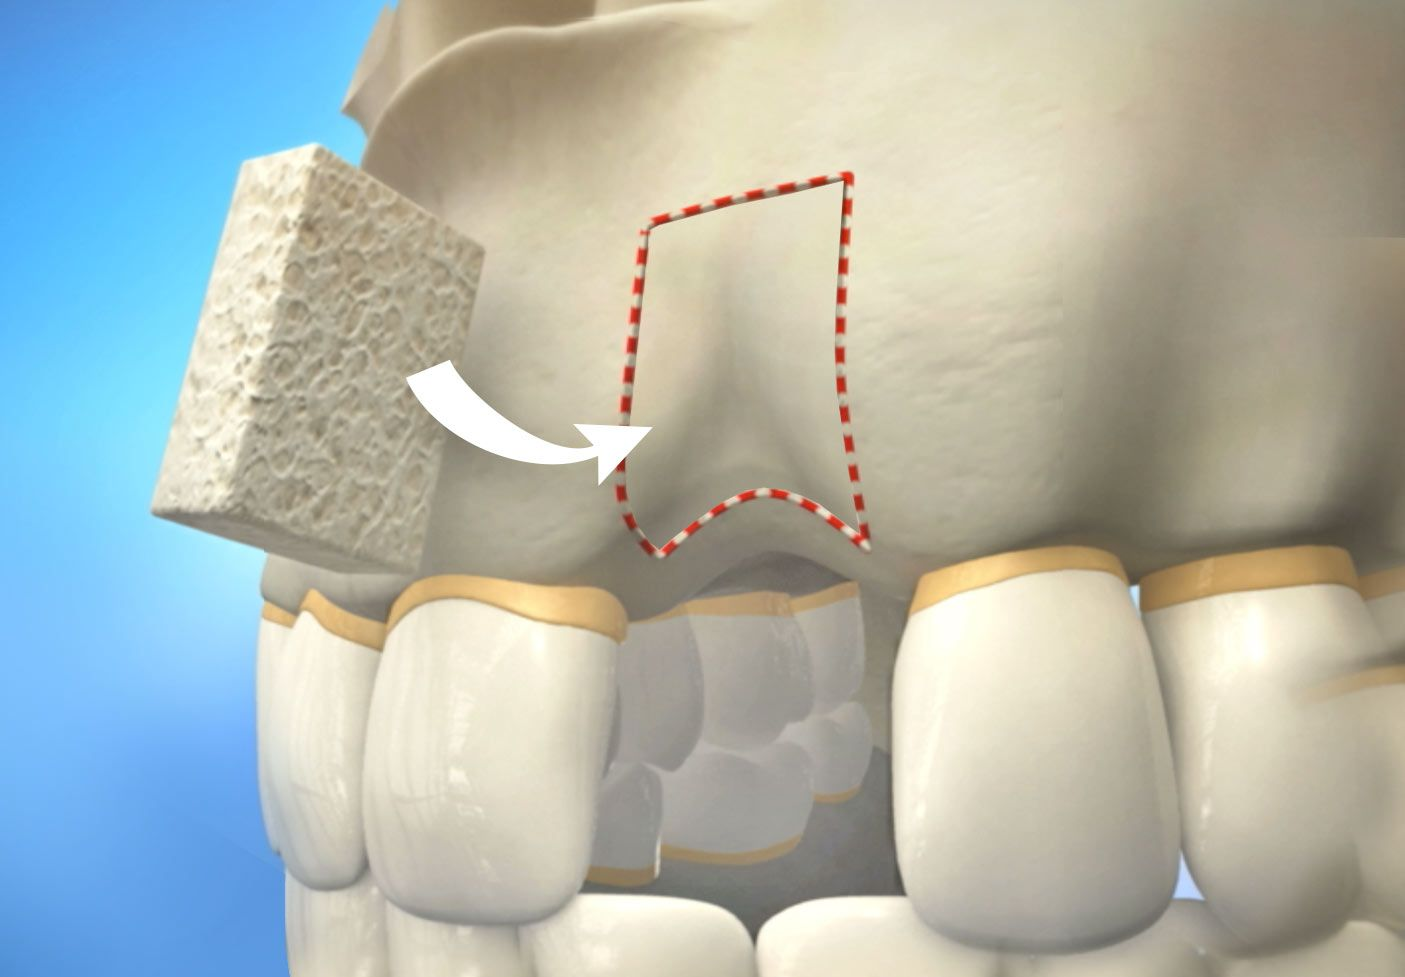 Illustration of bone graft